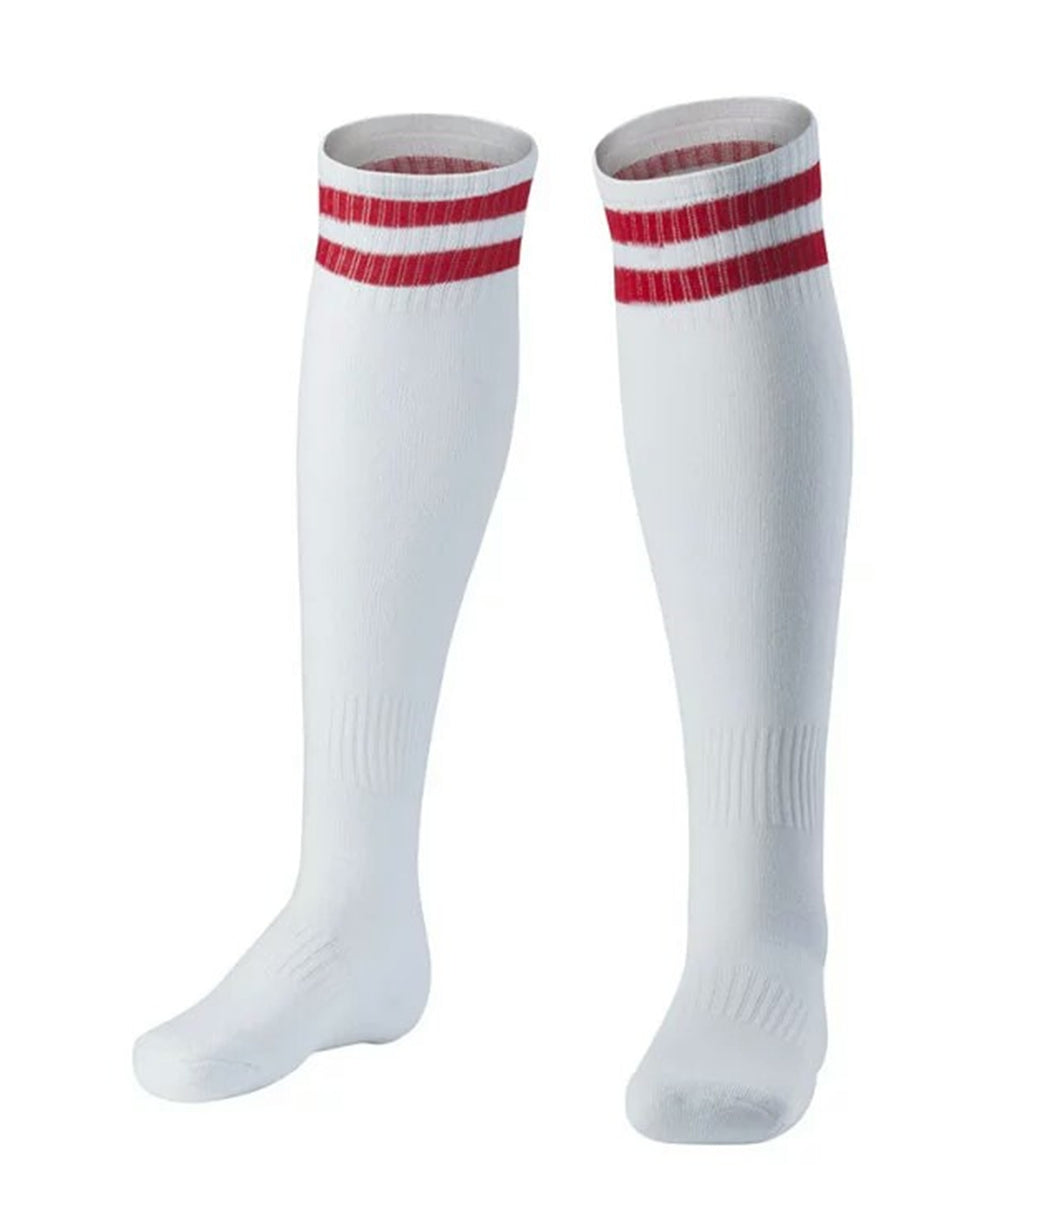 Socks Junior and Adult - White with two red lines